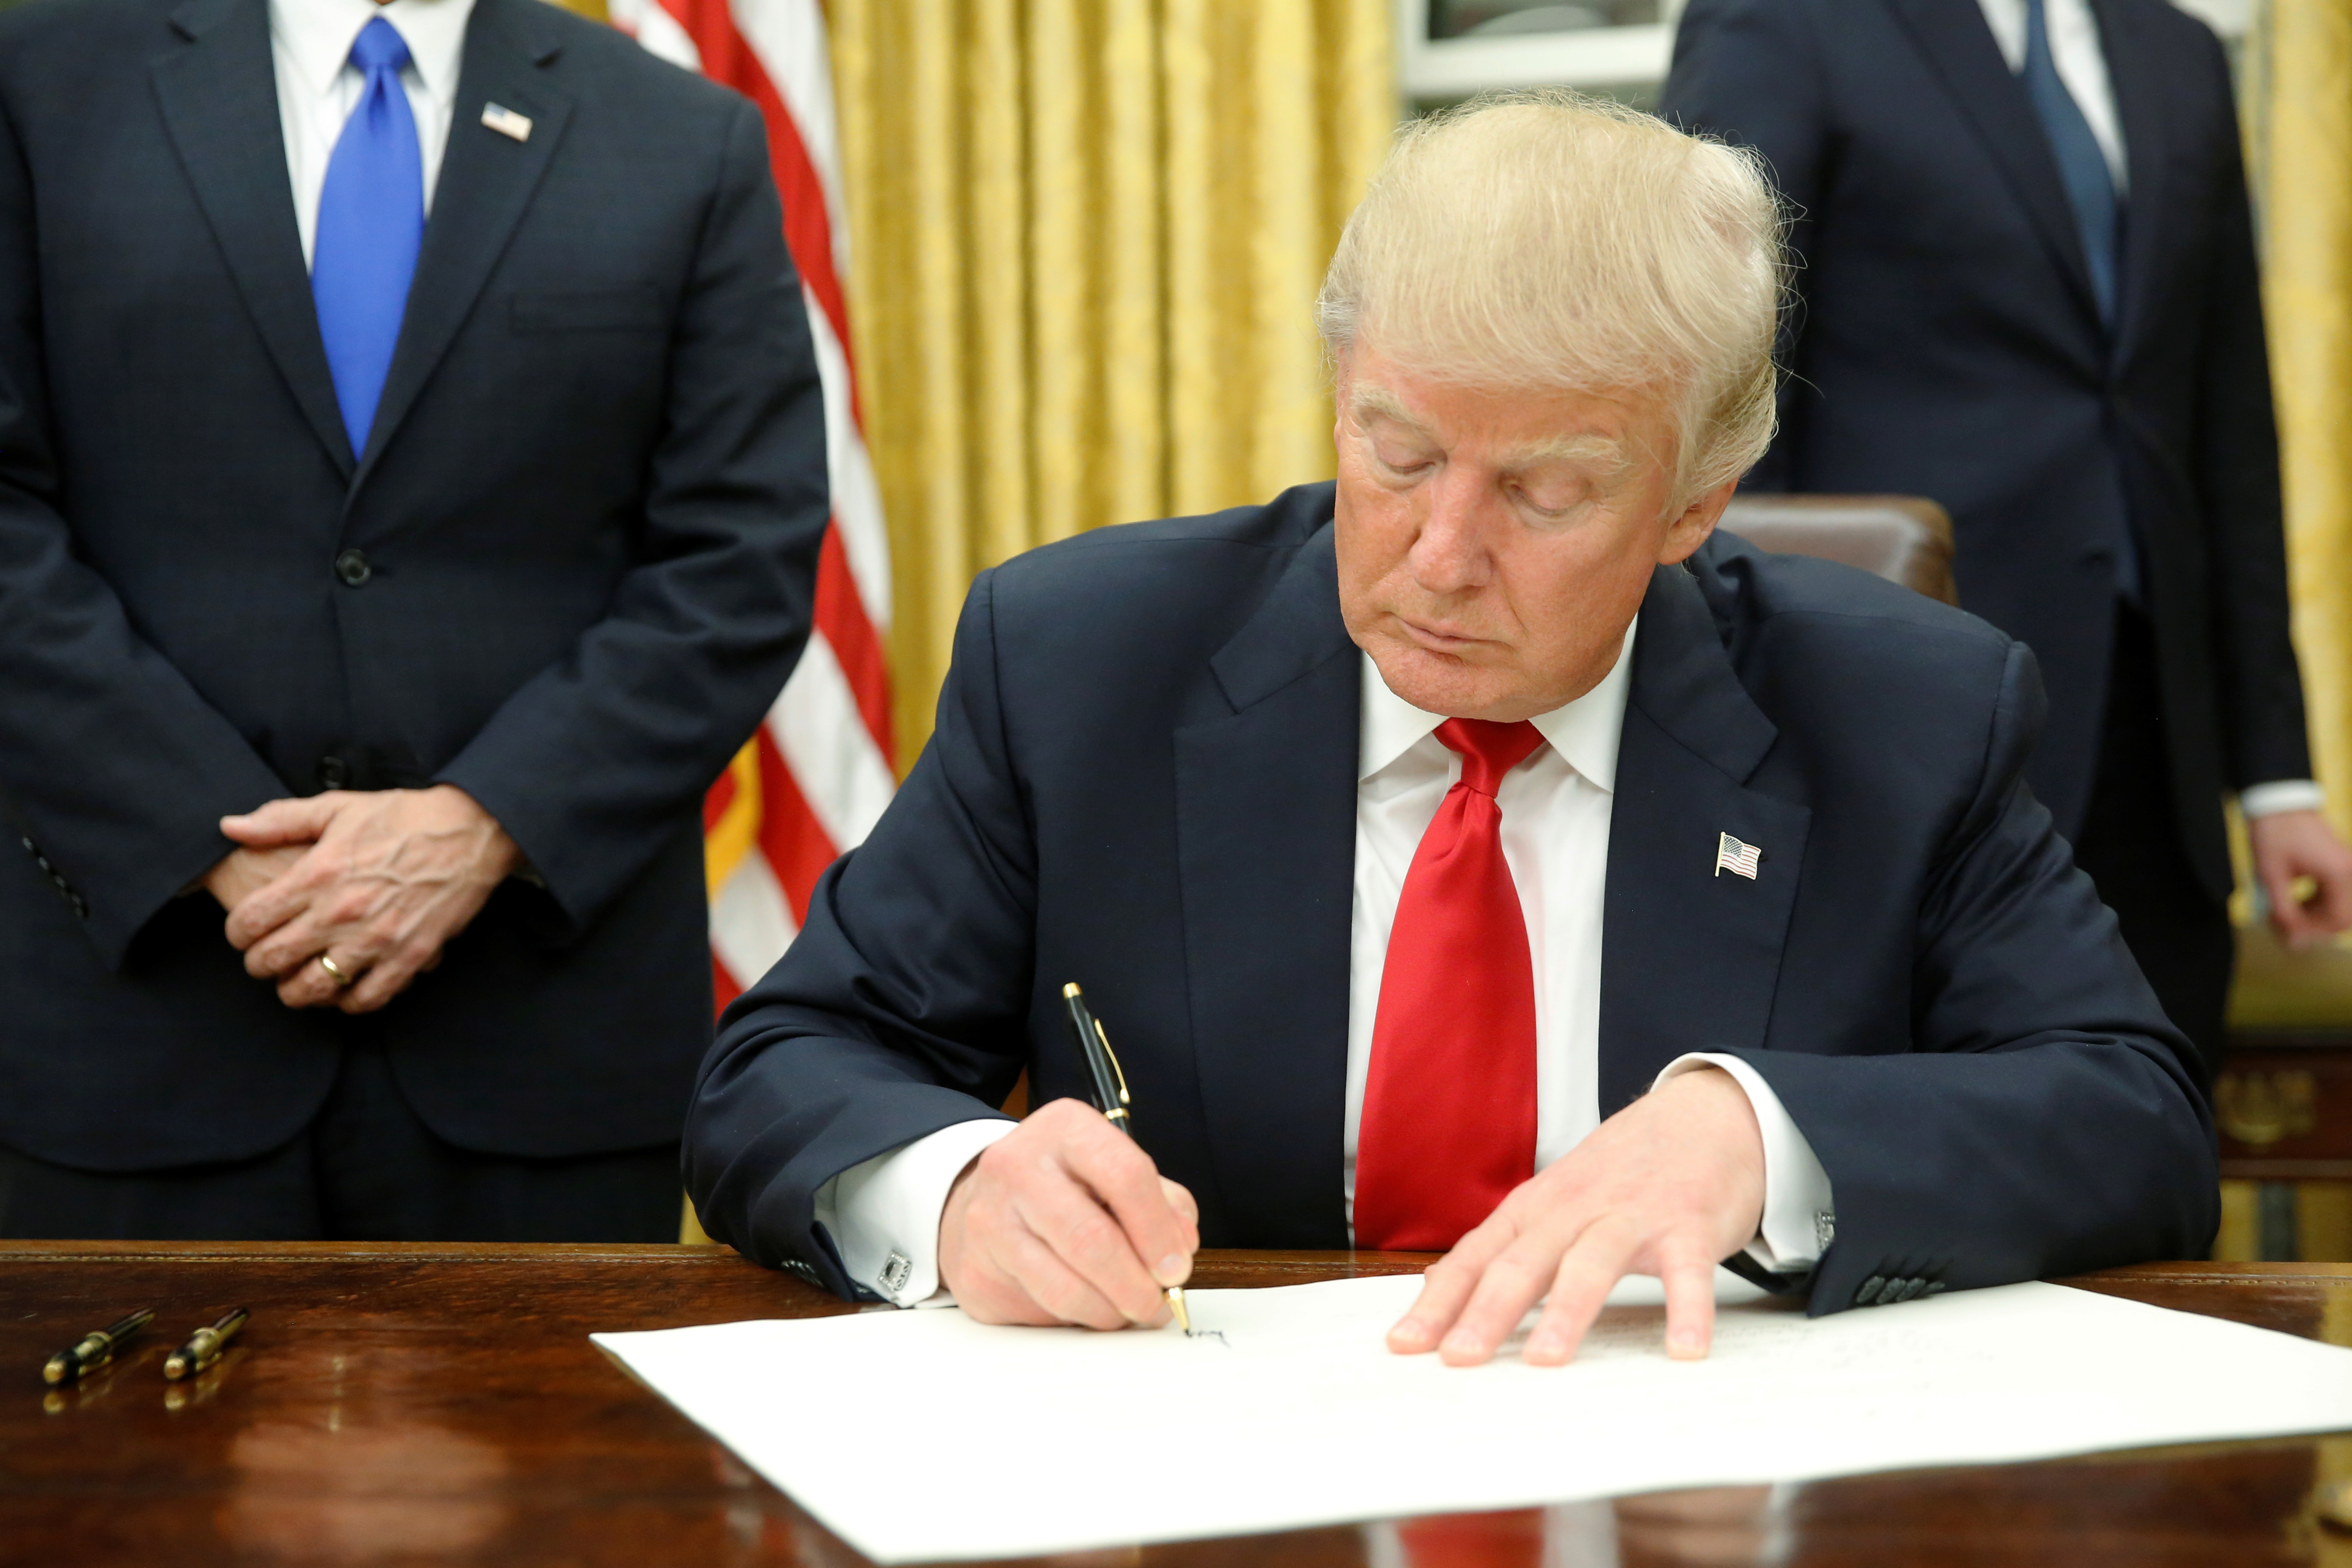 U.S. President Donald Trump signs his first executive orders in the Oval Office in Washington, U.S. January 20, 2017. REUTERS/Jonathan Ernst - RTSWLUX